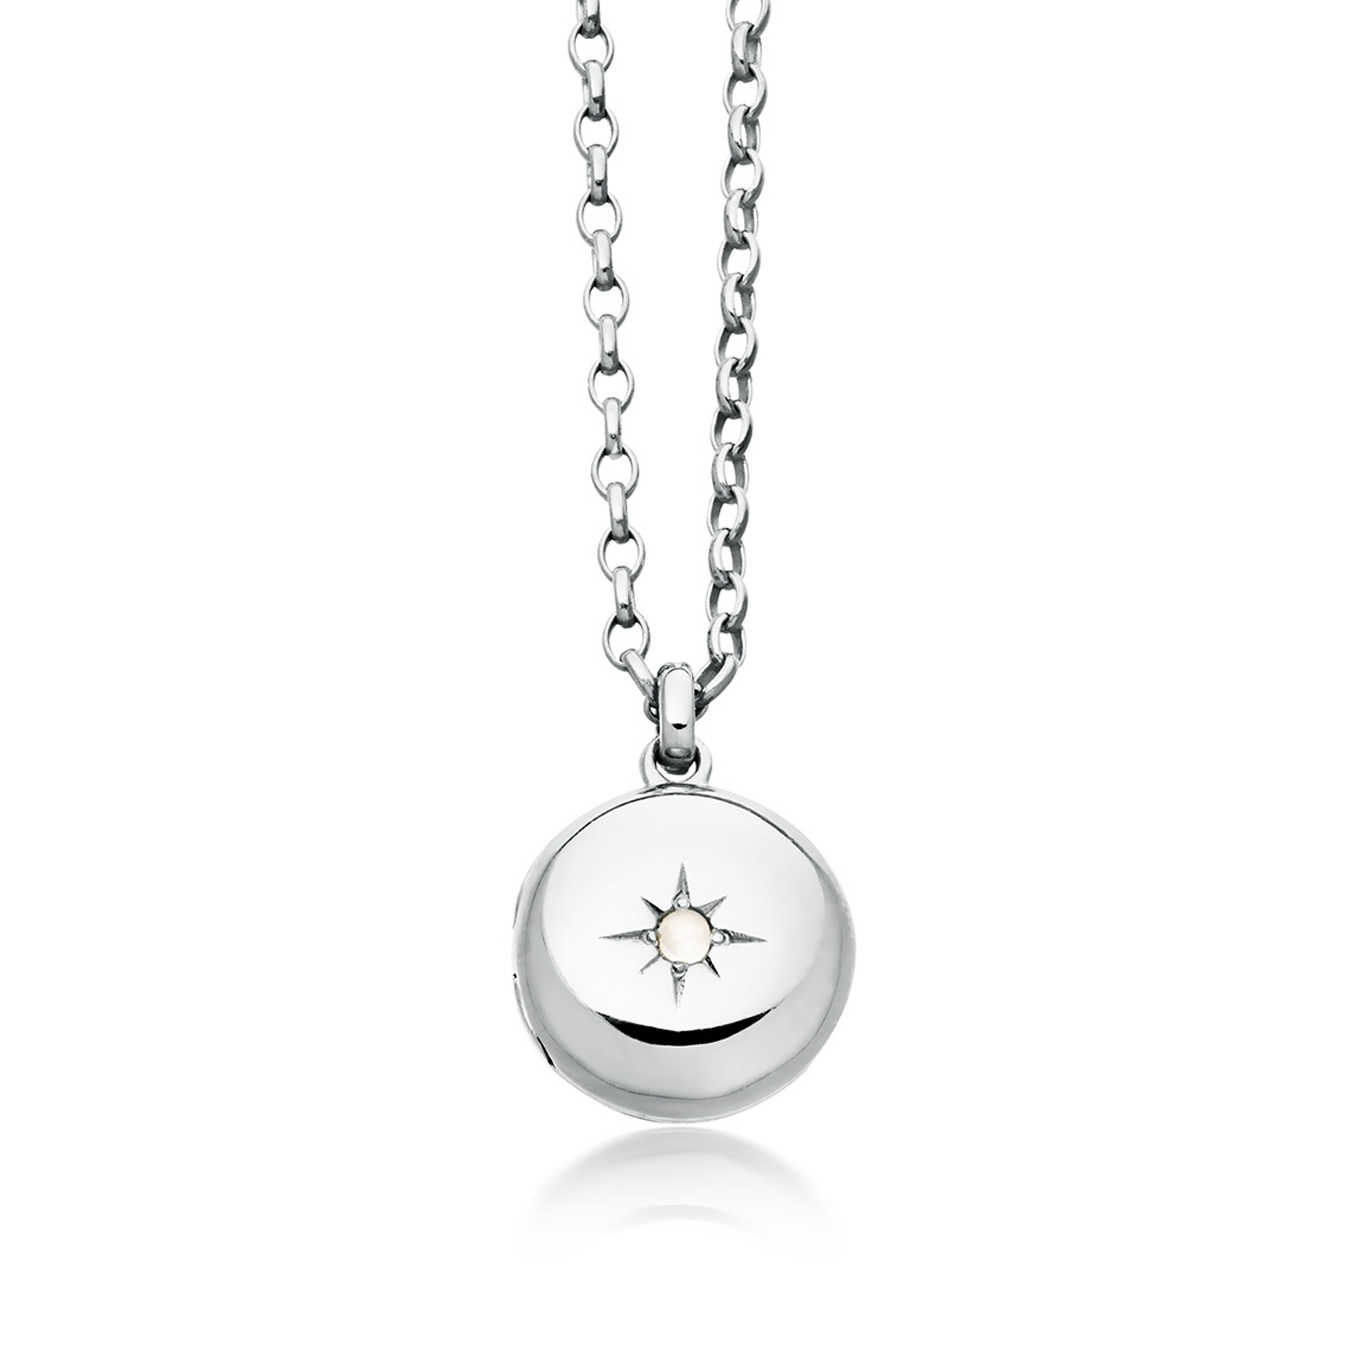 Little Astley Moonstone Locket Necklace